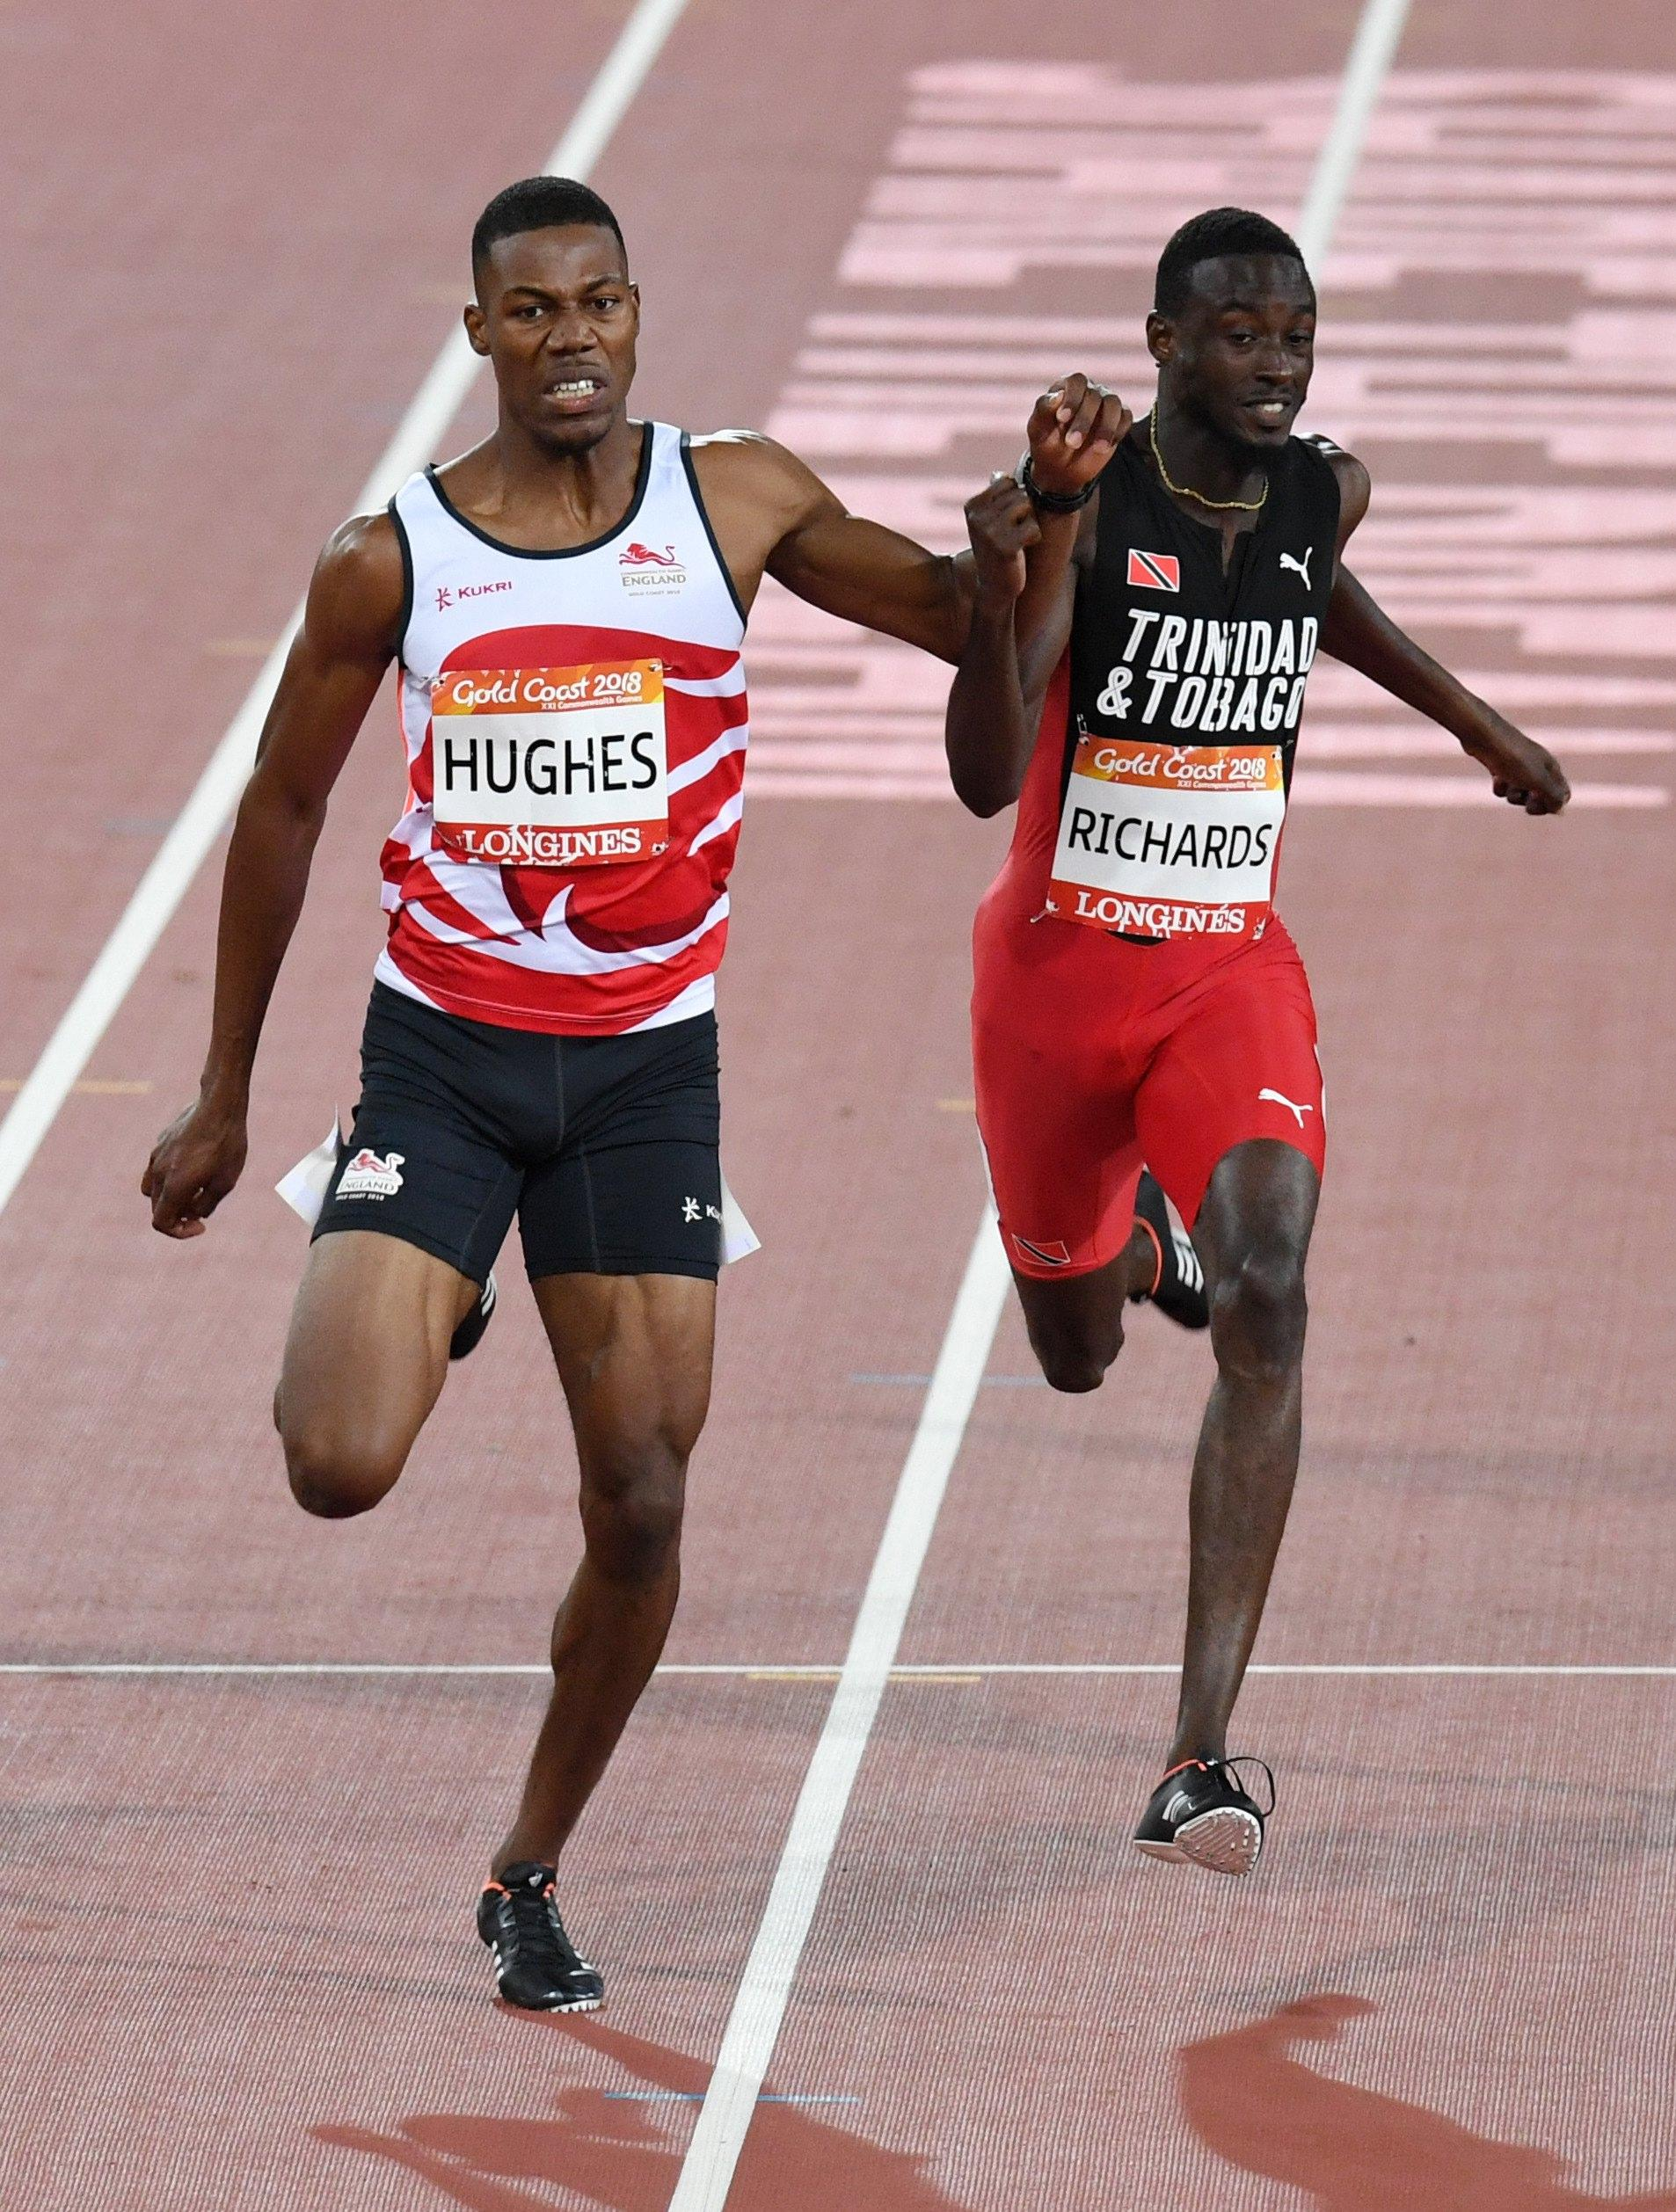 Zharnel Hughes was disqualified after winning the individual 200m final